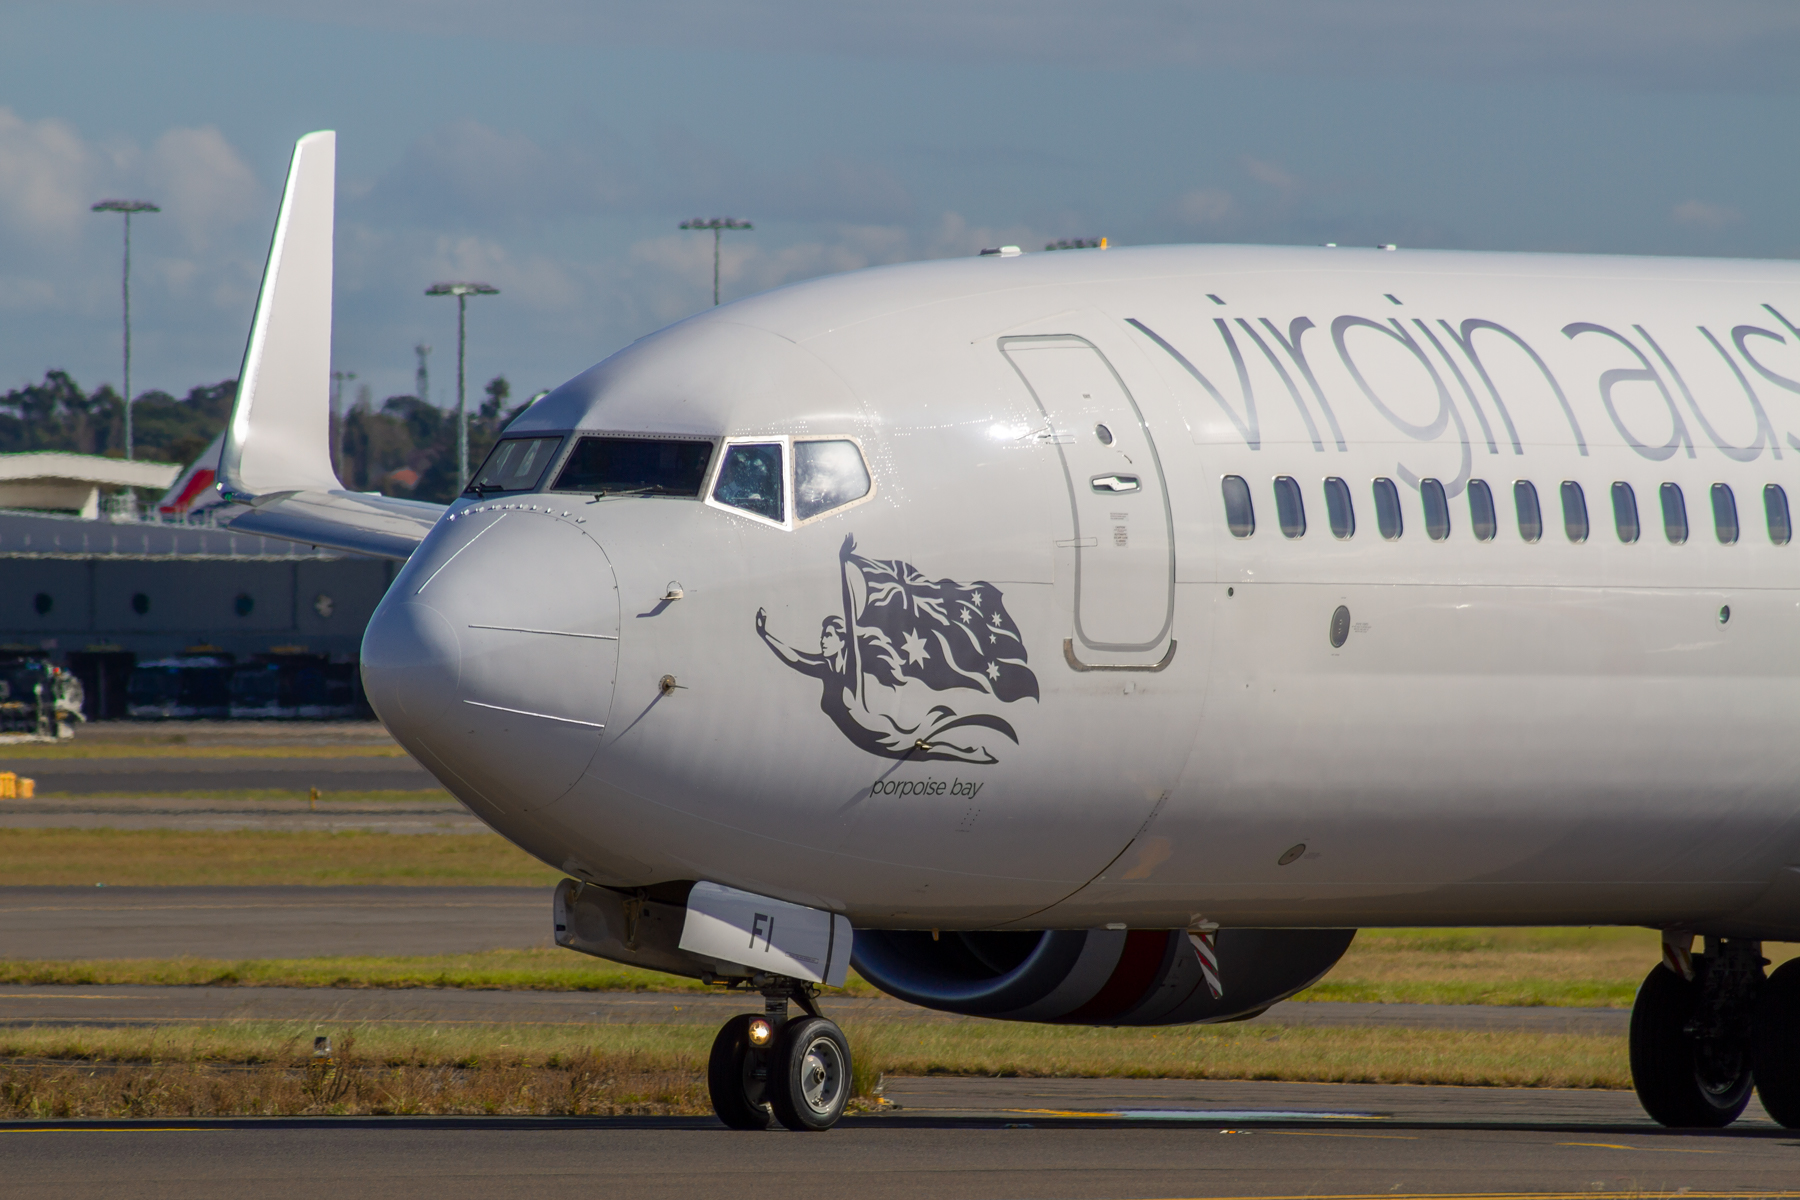 Virgin Australia Airlines Boeing 737-800 VH-YFI at Kingsford Smith